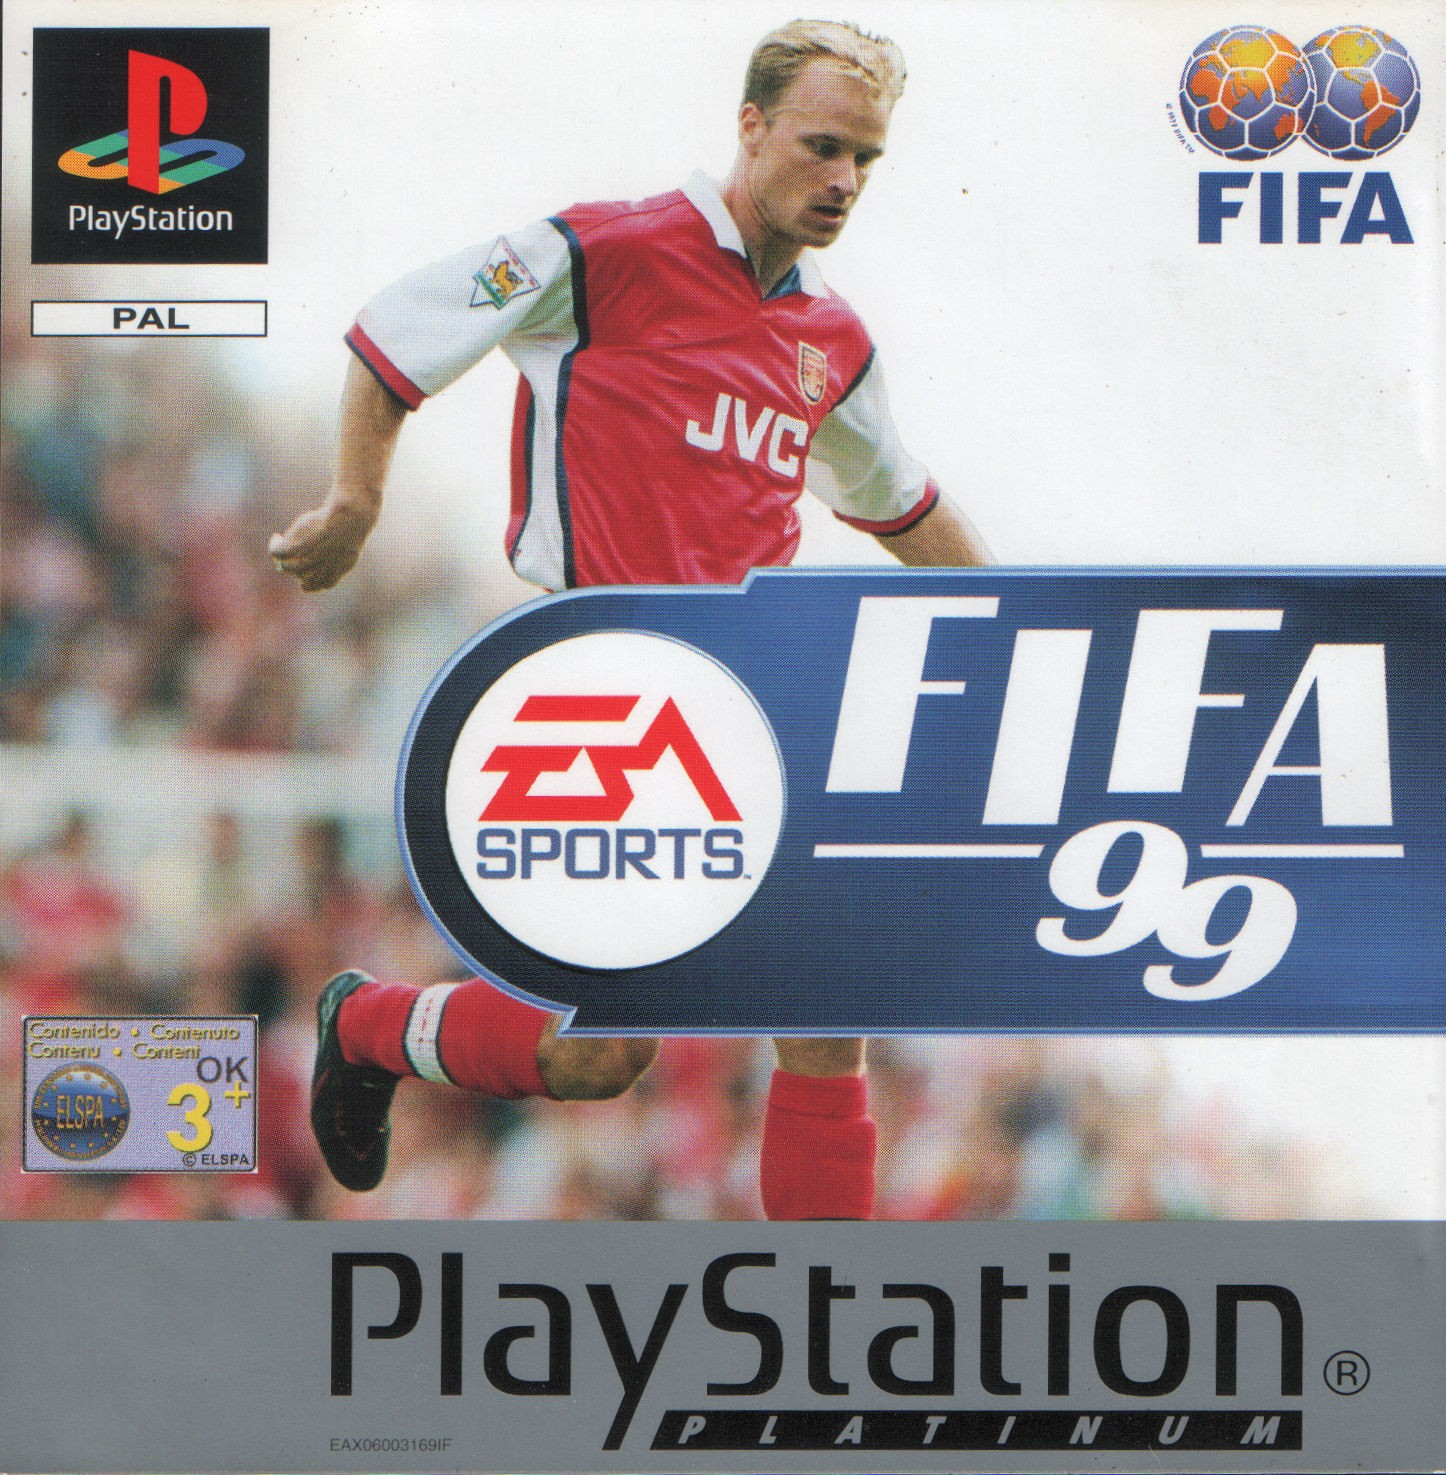 FIFA 99 Cover FIFA Games Evolution From 94 2020